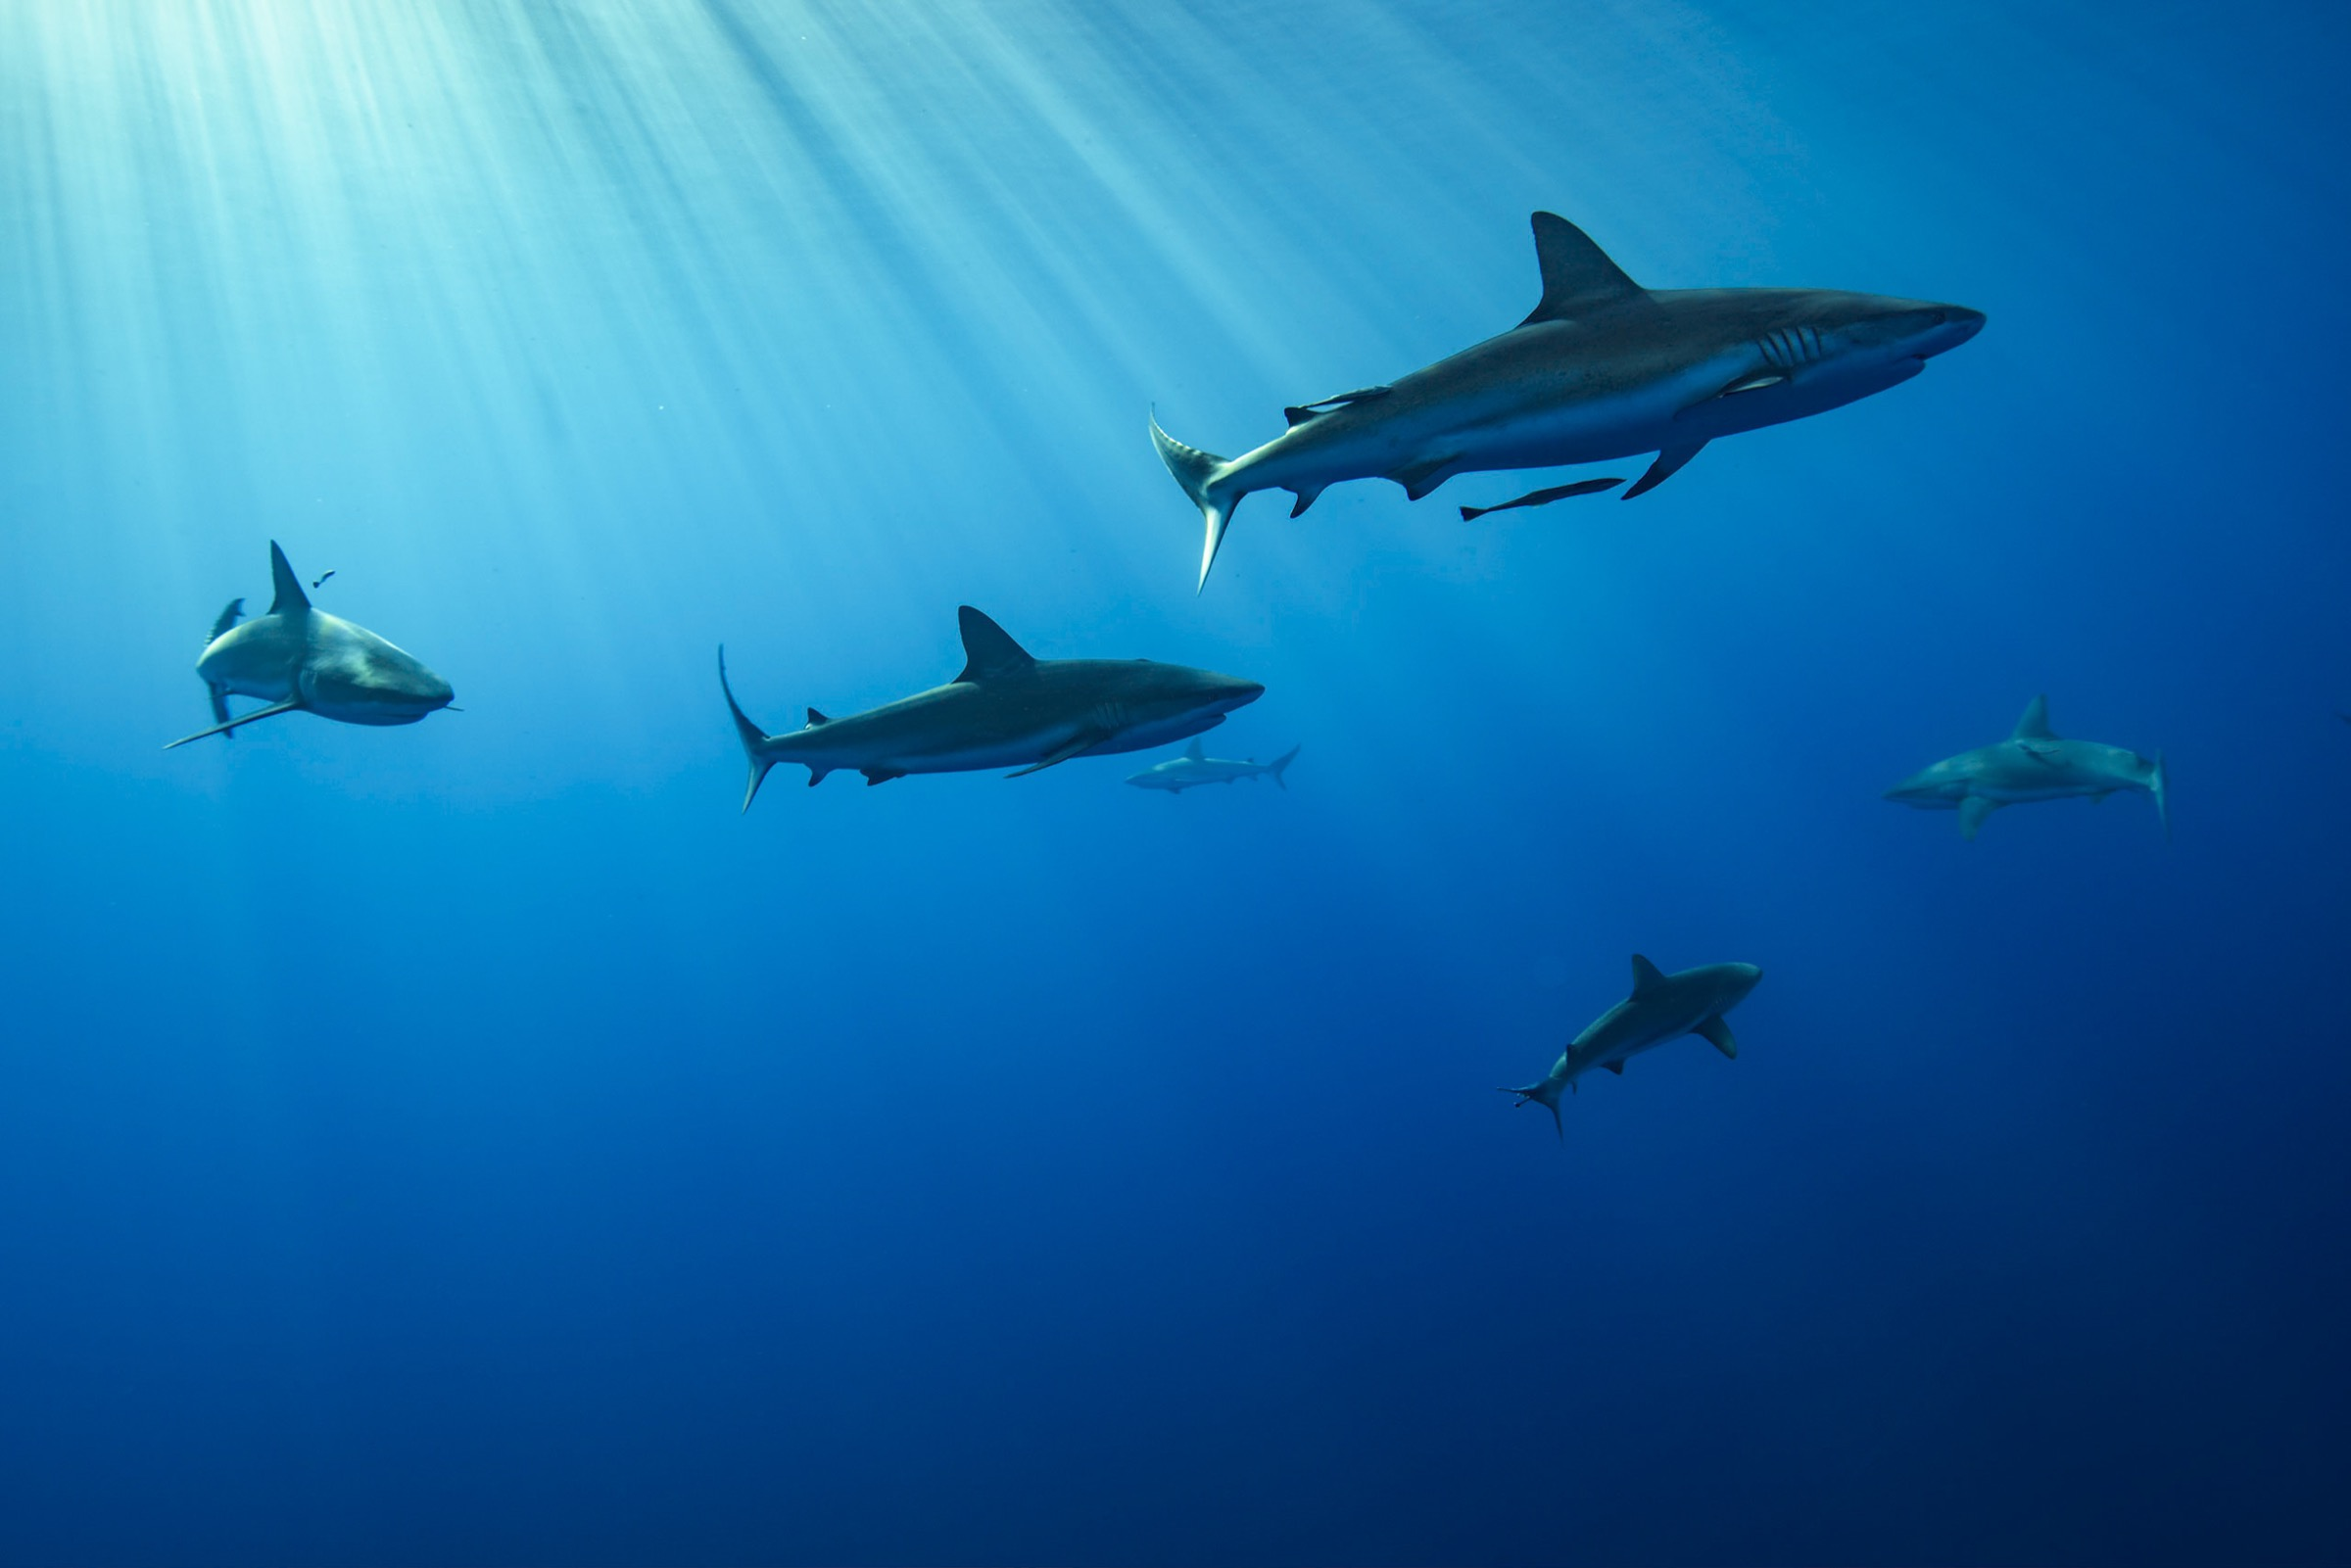 Caribbean reef sharks (Carcharhinus perezii) and silky sharks (Carcharhinus falciformis) circled overhead as Aburto and fellow divers ascended back toward the surface in the Gardens of the Queen.